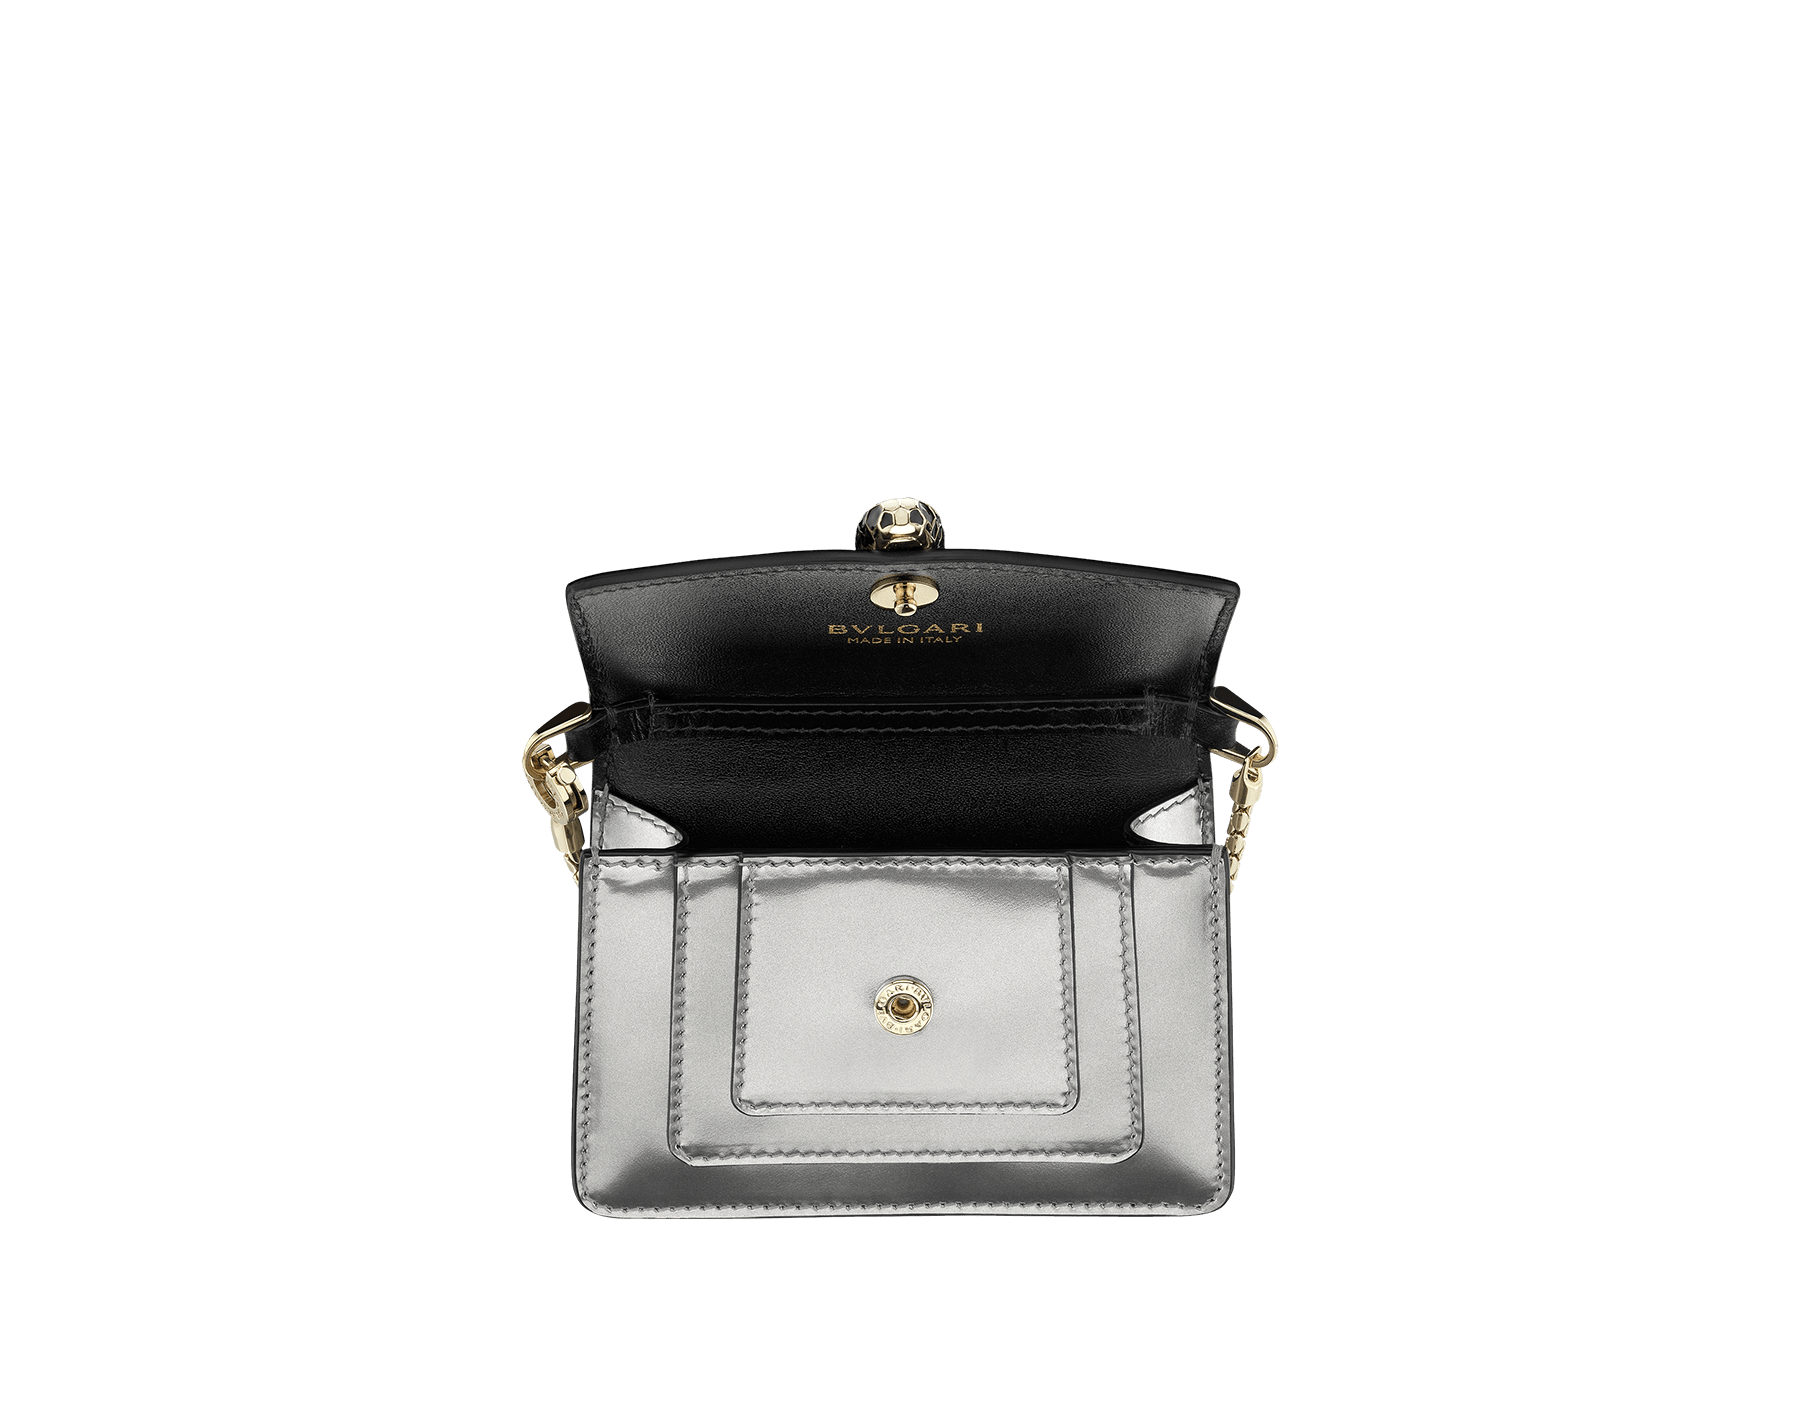 Bag charm Serpenti Forever miniature in royal sapphire brushed metallic calf leather with black calf leather lining. Brass light gold plated Serpenti head stud closure in black and white enamel with green enamel eyes. SERP-BAG-CHARM-BMCL image 1